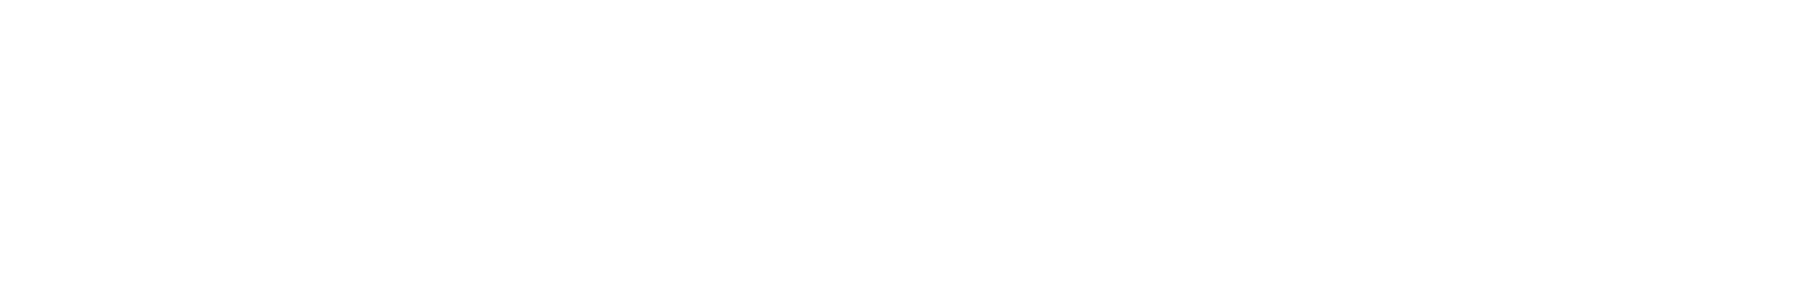 Impactful Creative Solutions To Help Build Your Business